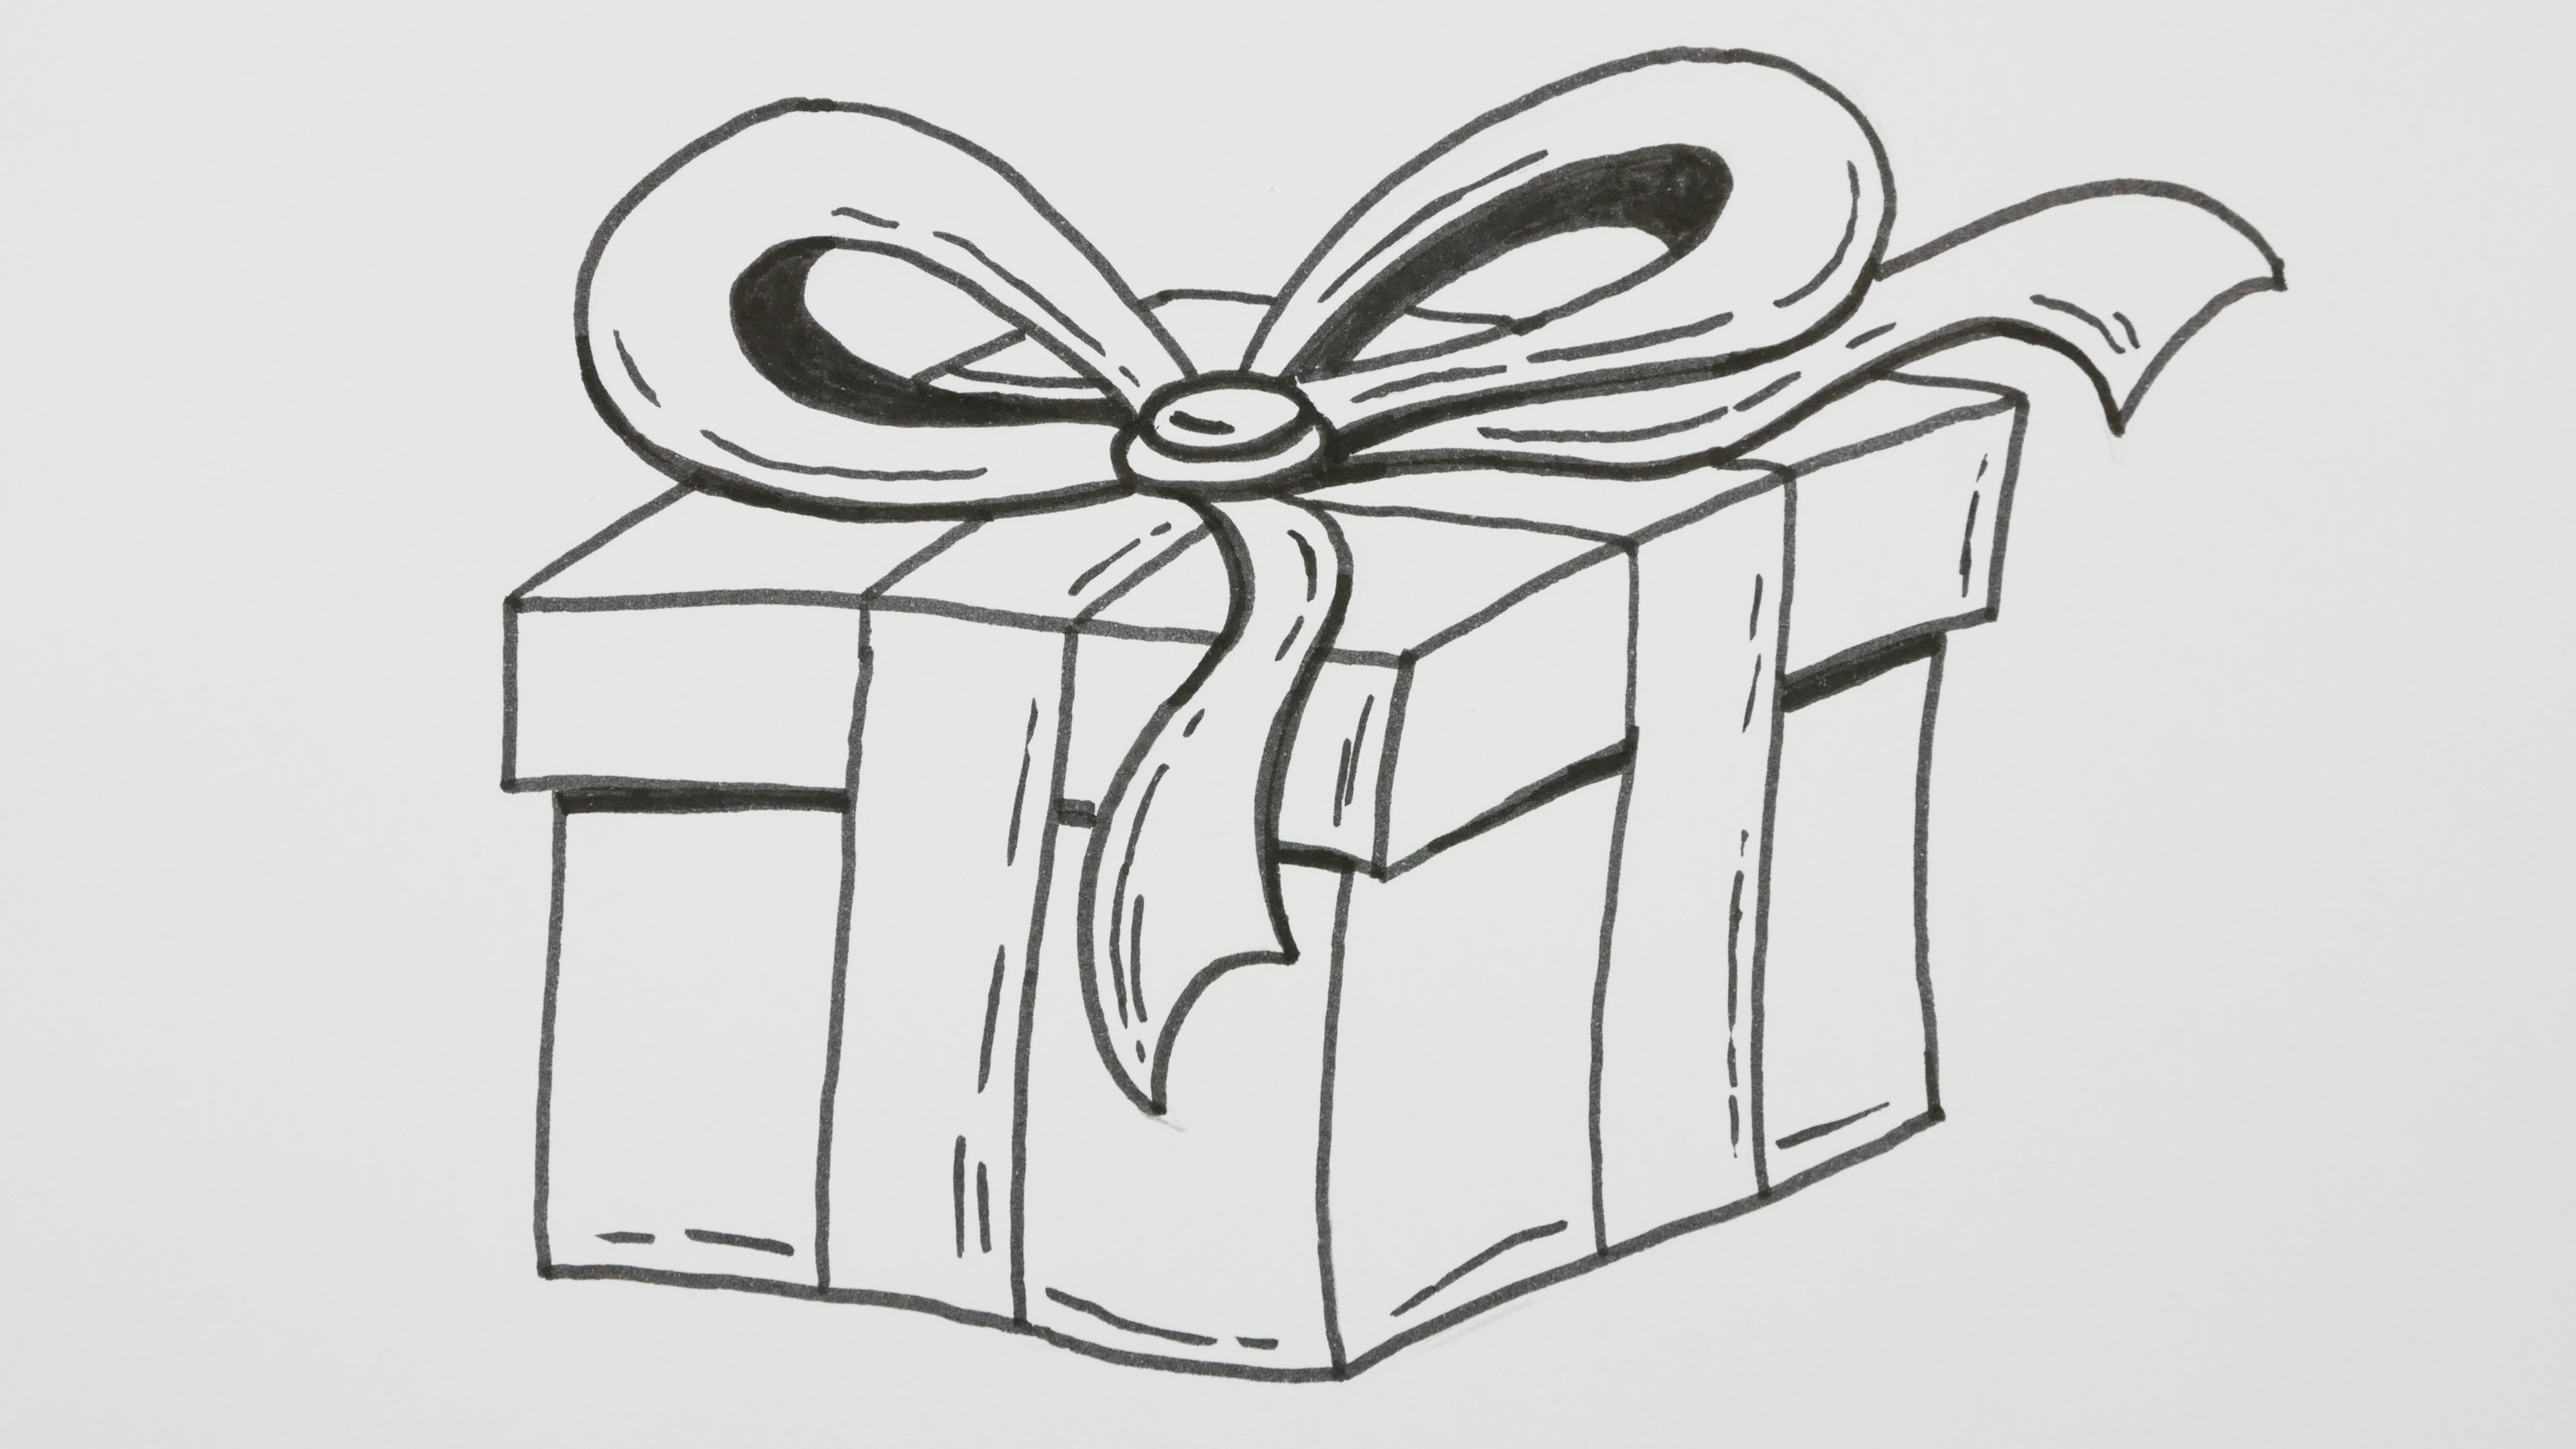 happy b day drawings ; happy-birthday-day-cake-pencil-drawings-how-to-draw-a-happy-birthday-gift-box-with-bowknot-cartoon-comic